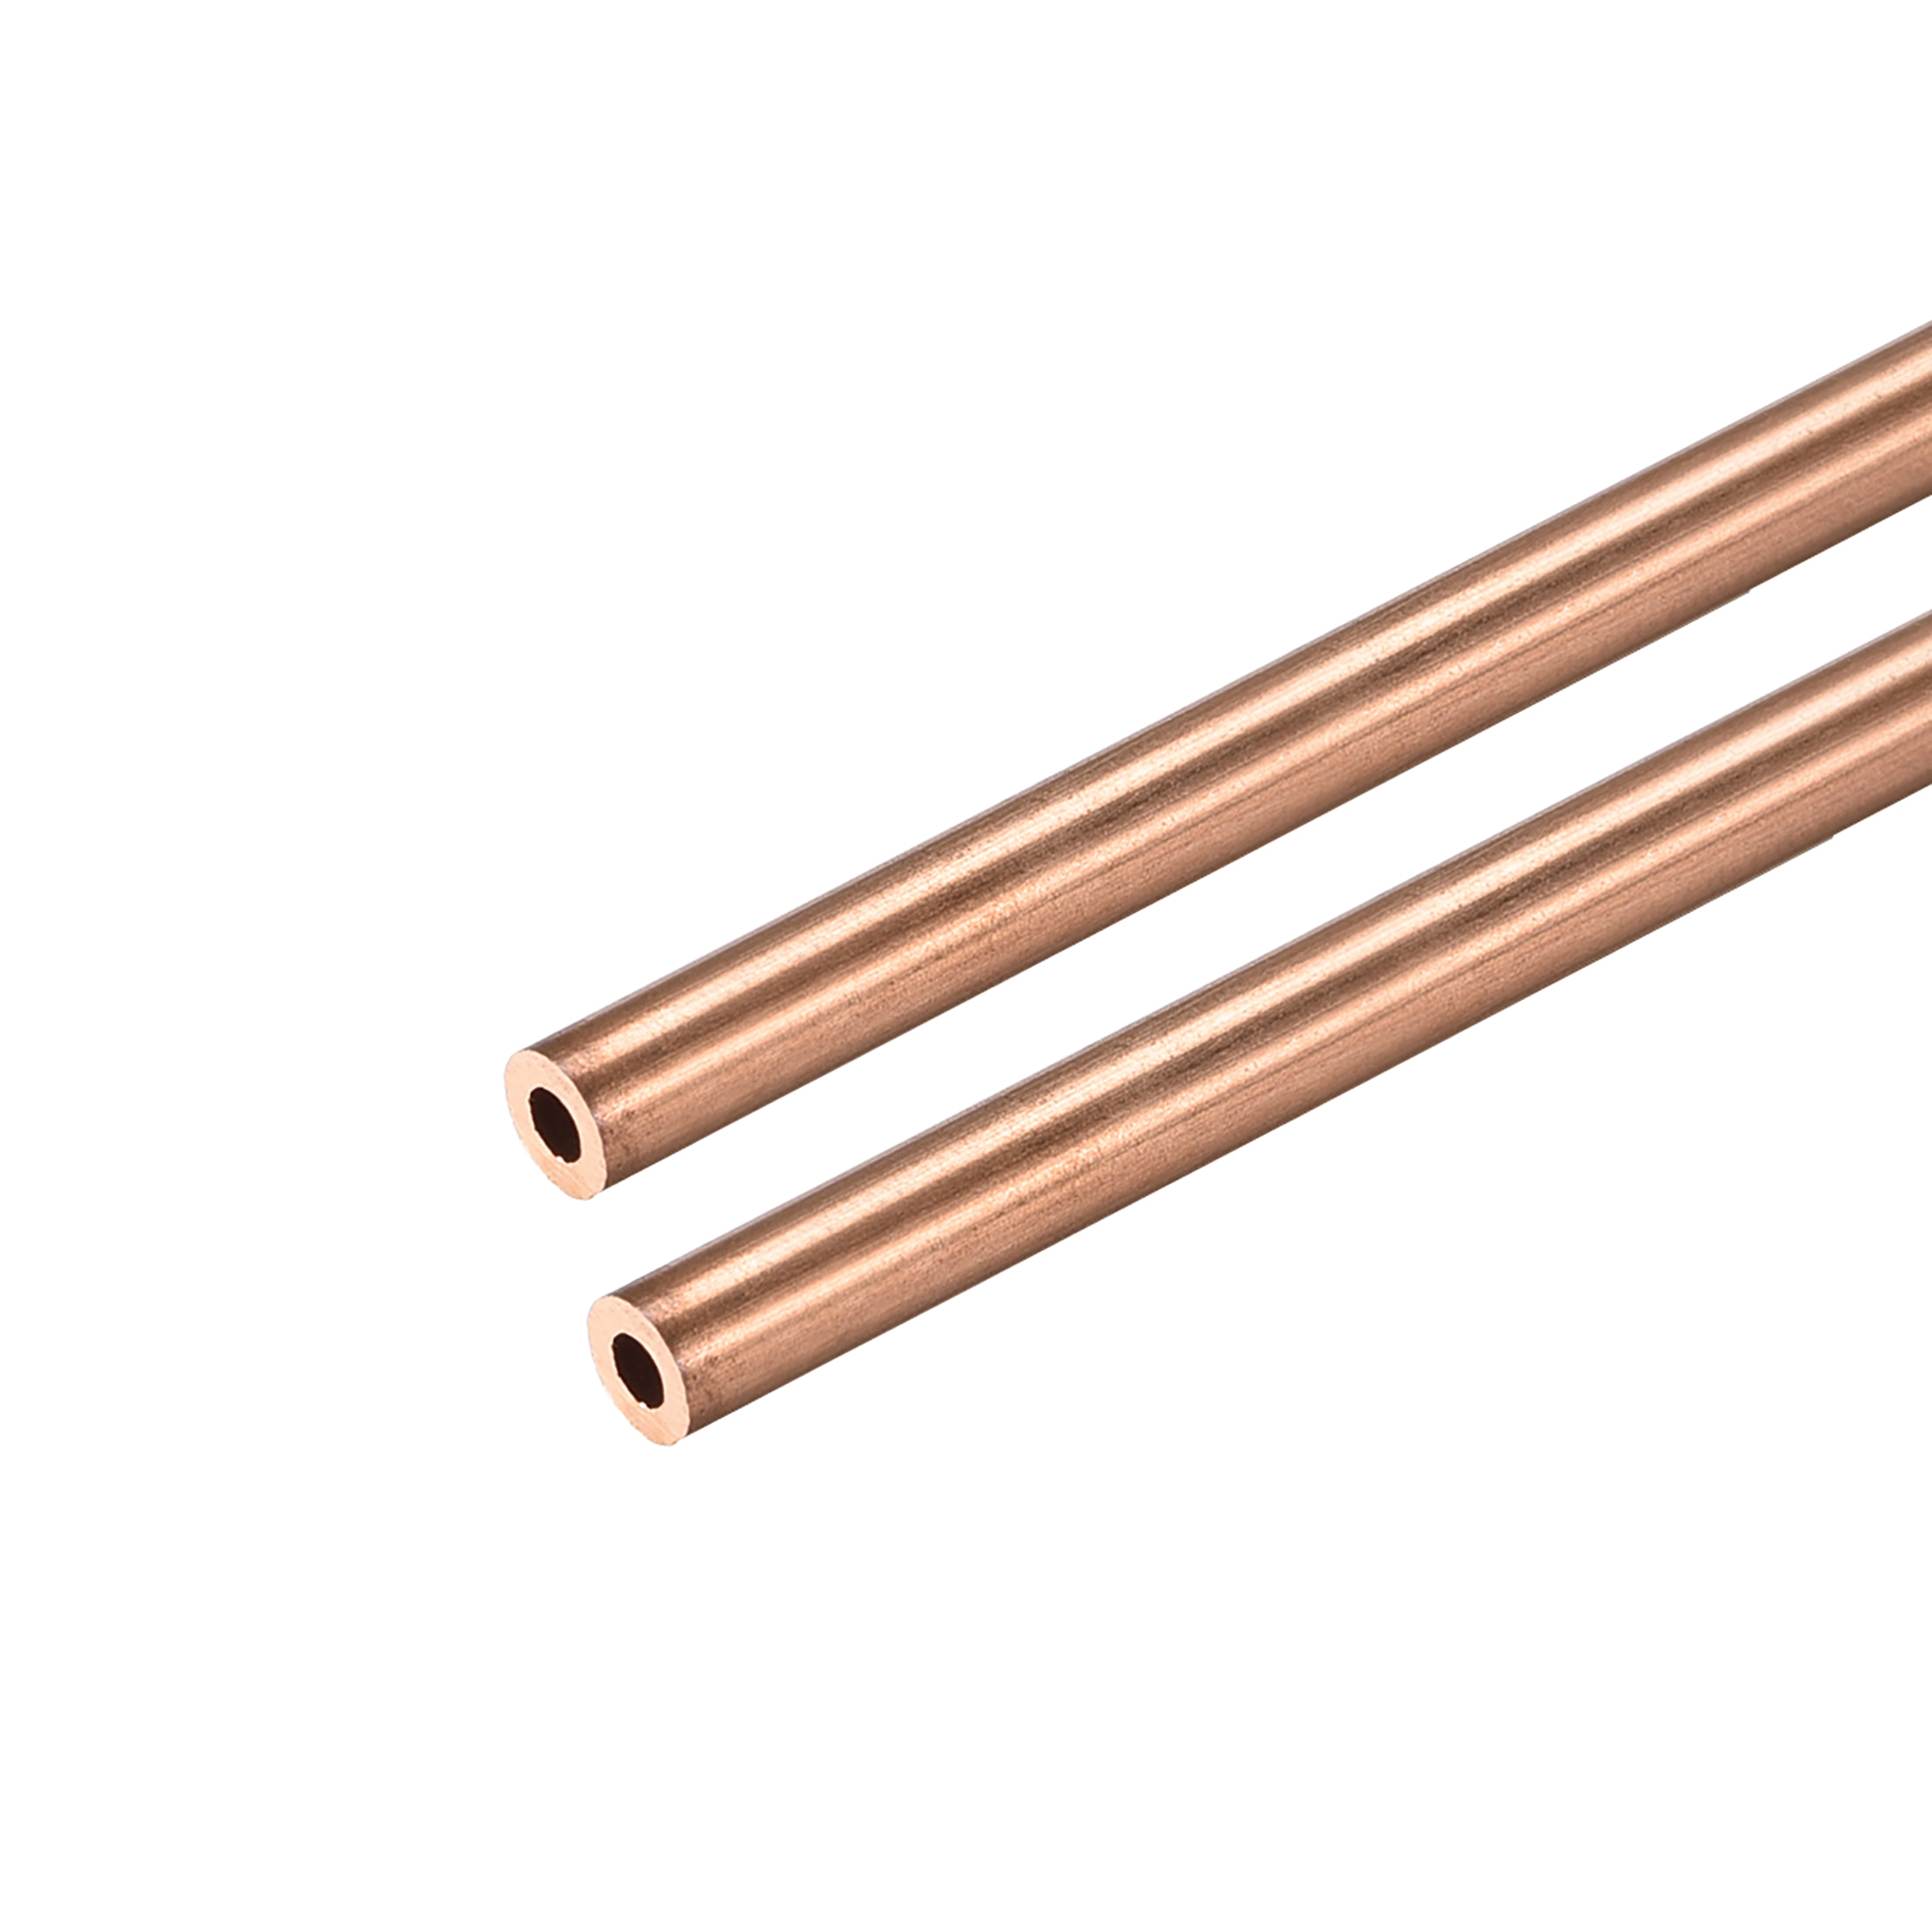 Copper Round Tube 4mm OD 1mm Wall Thickness 300mm Long Pipe Tubing 3 Pcs